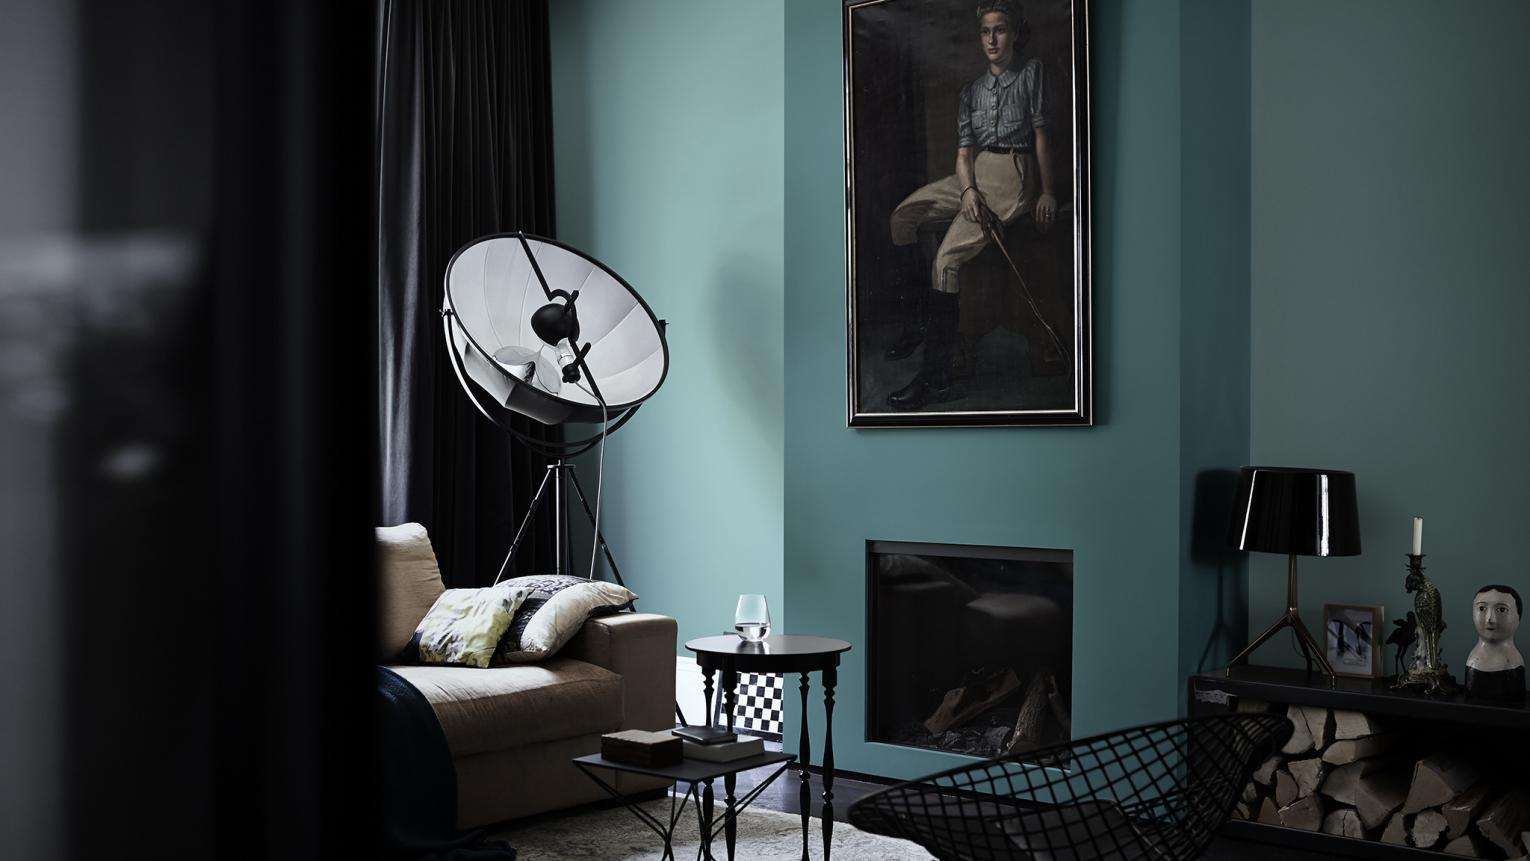 For a bold living room, contrast beautiful lagoon blue walls with furniture in black and charcoal shades.